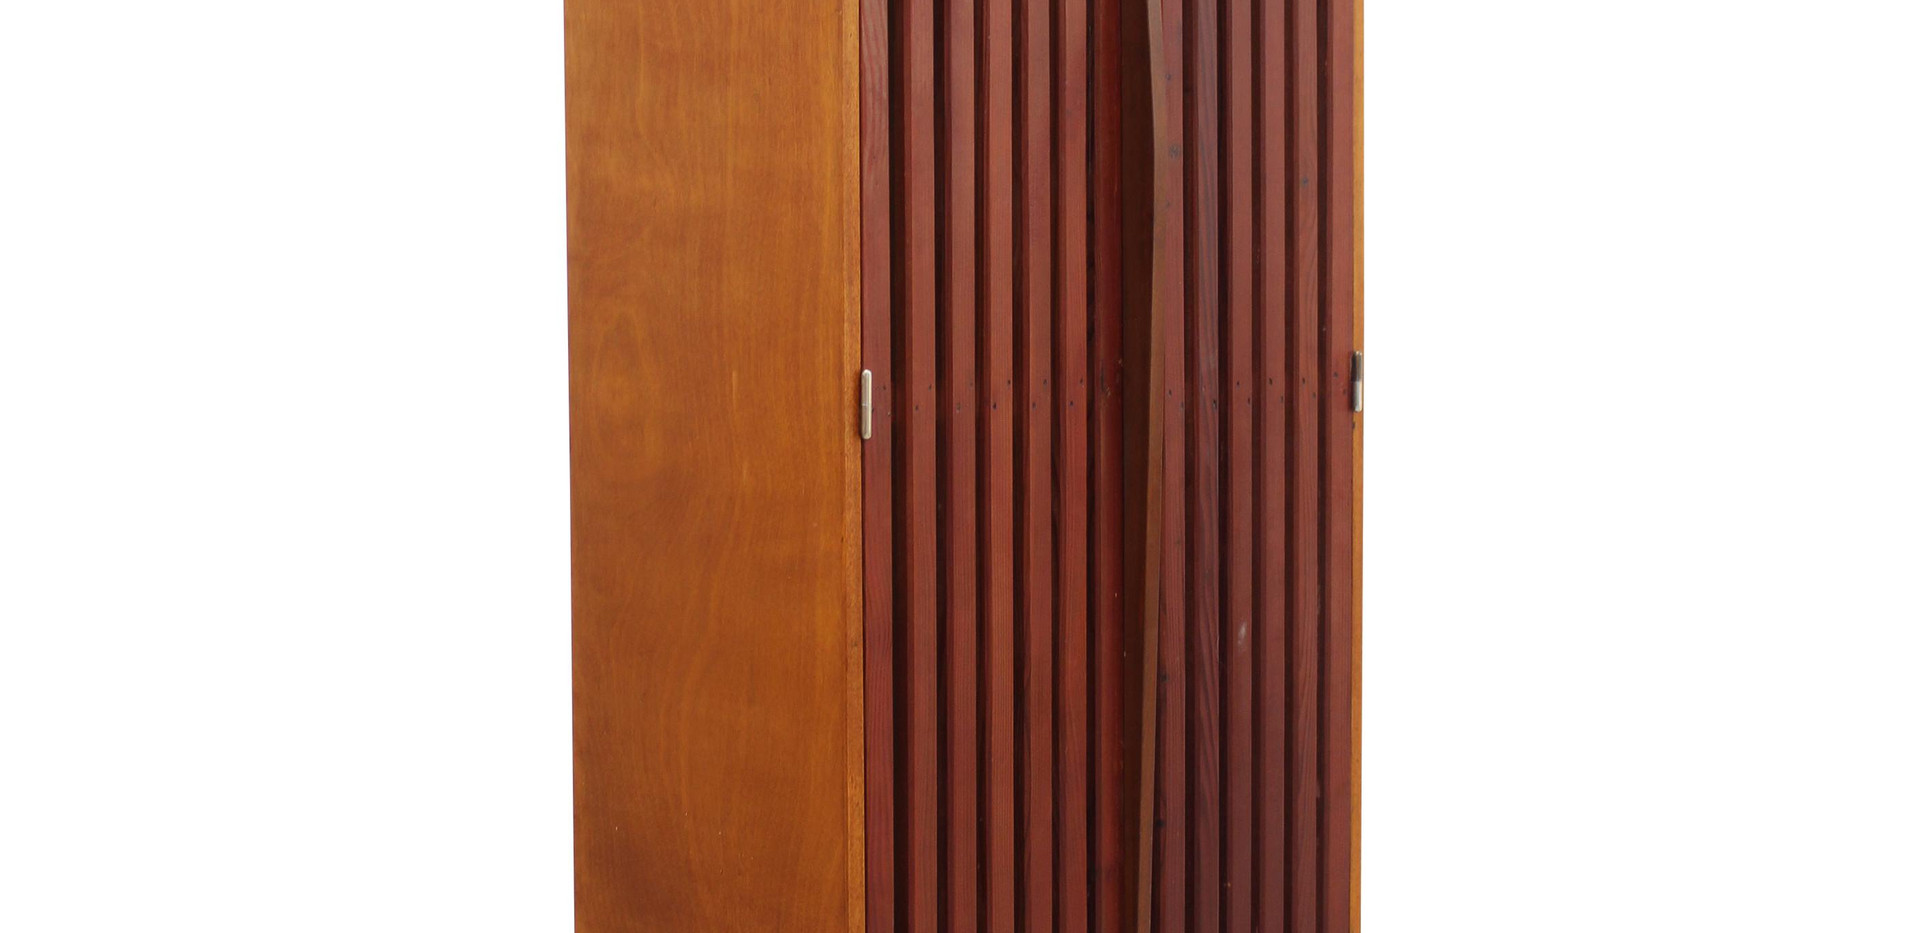 charlotte-perriand-cupboard-clement-civi